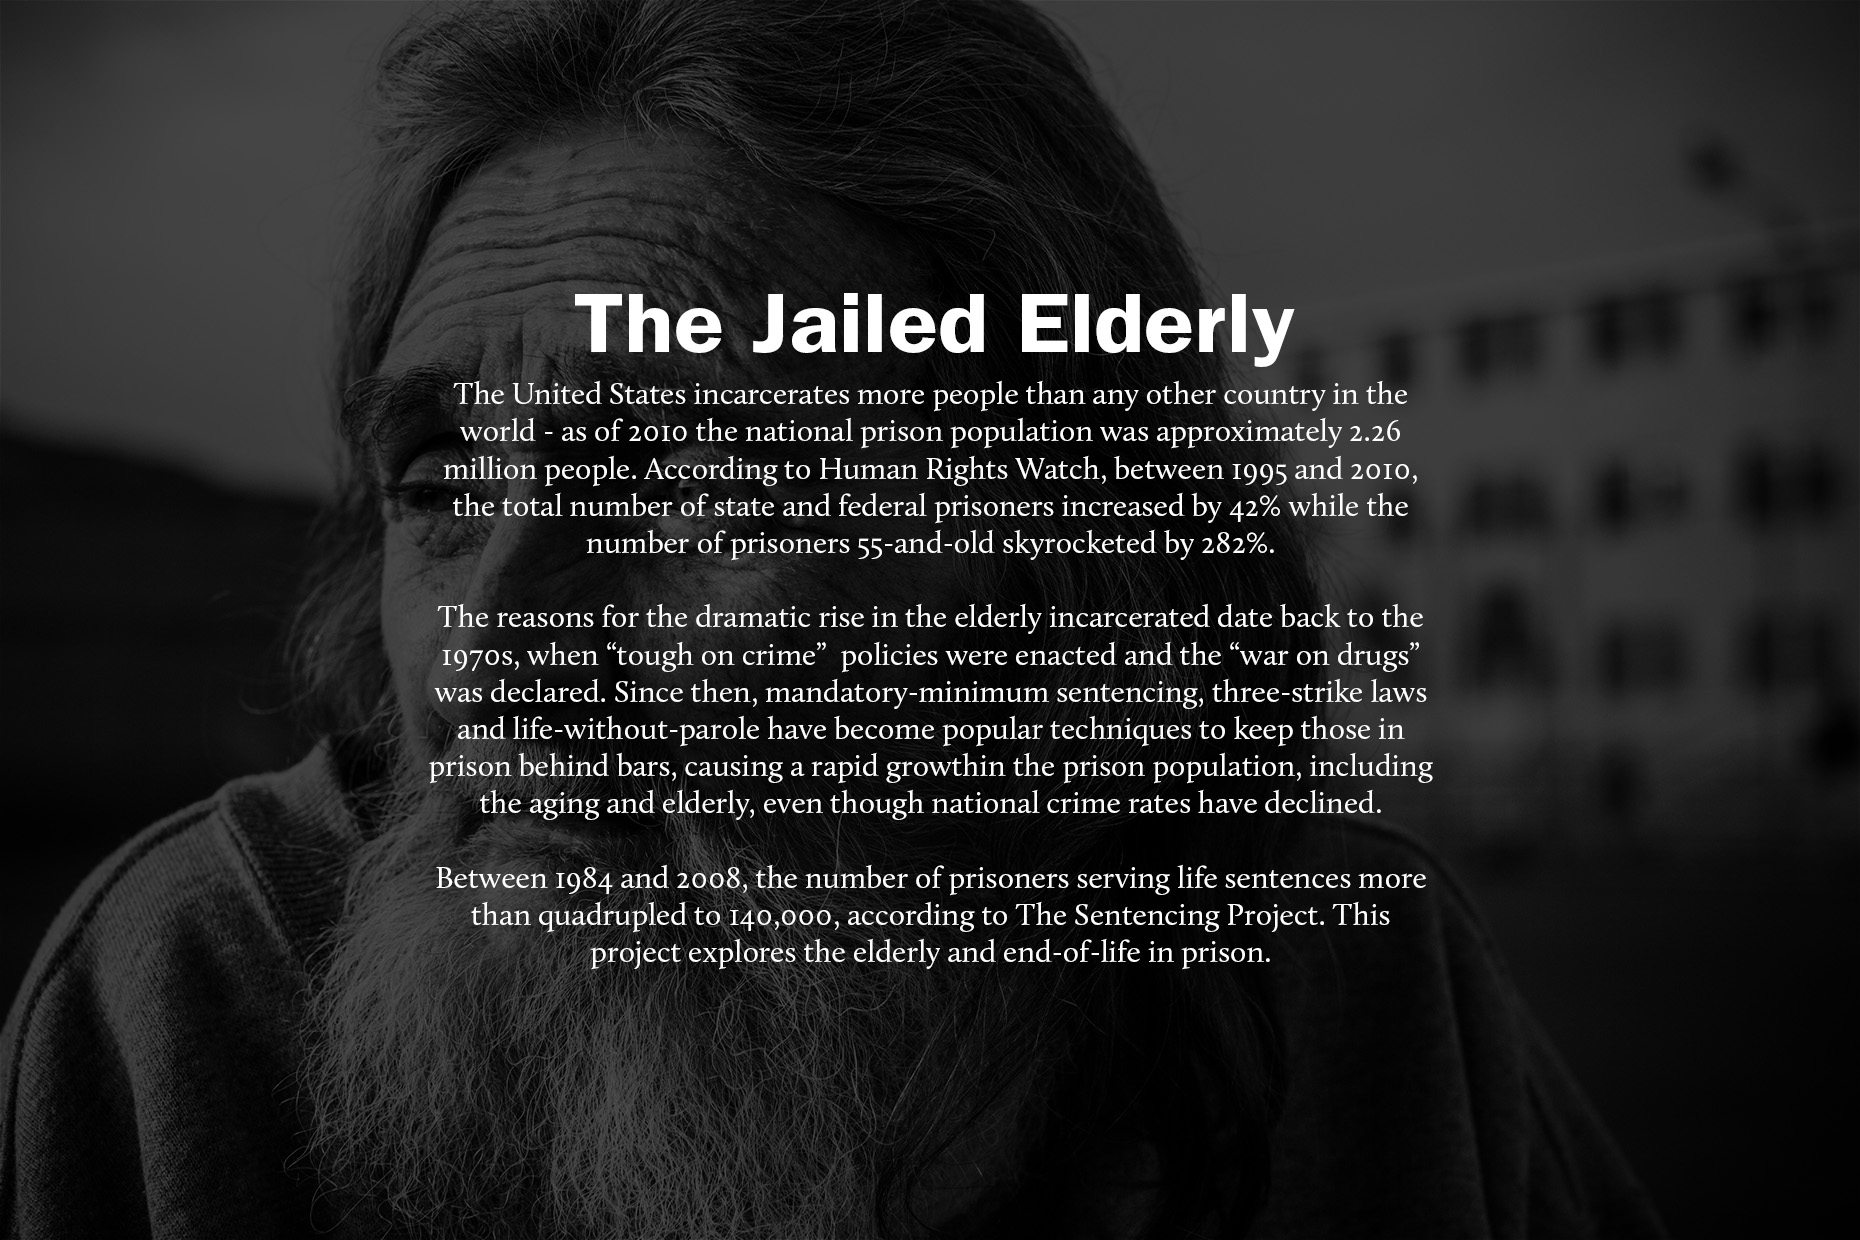 Jailed_Elderly_AFP_intro